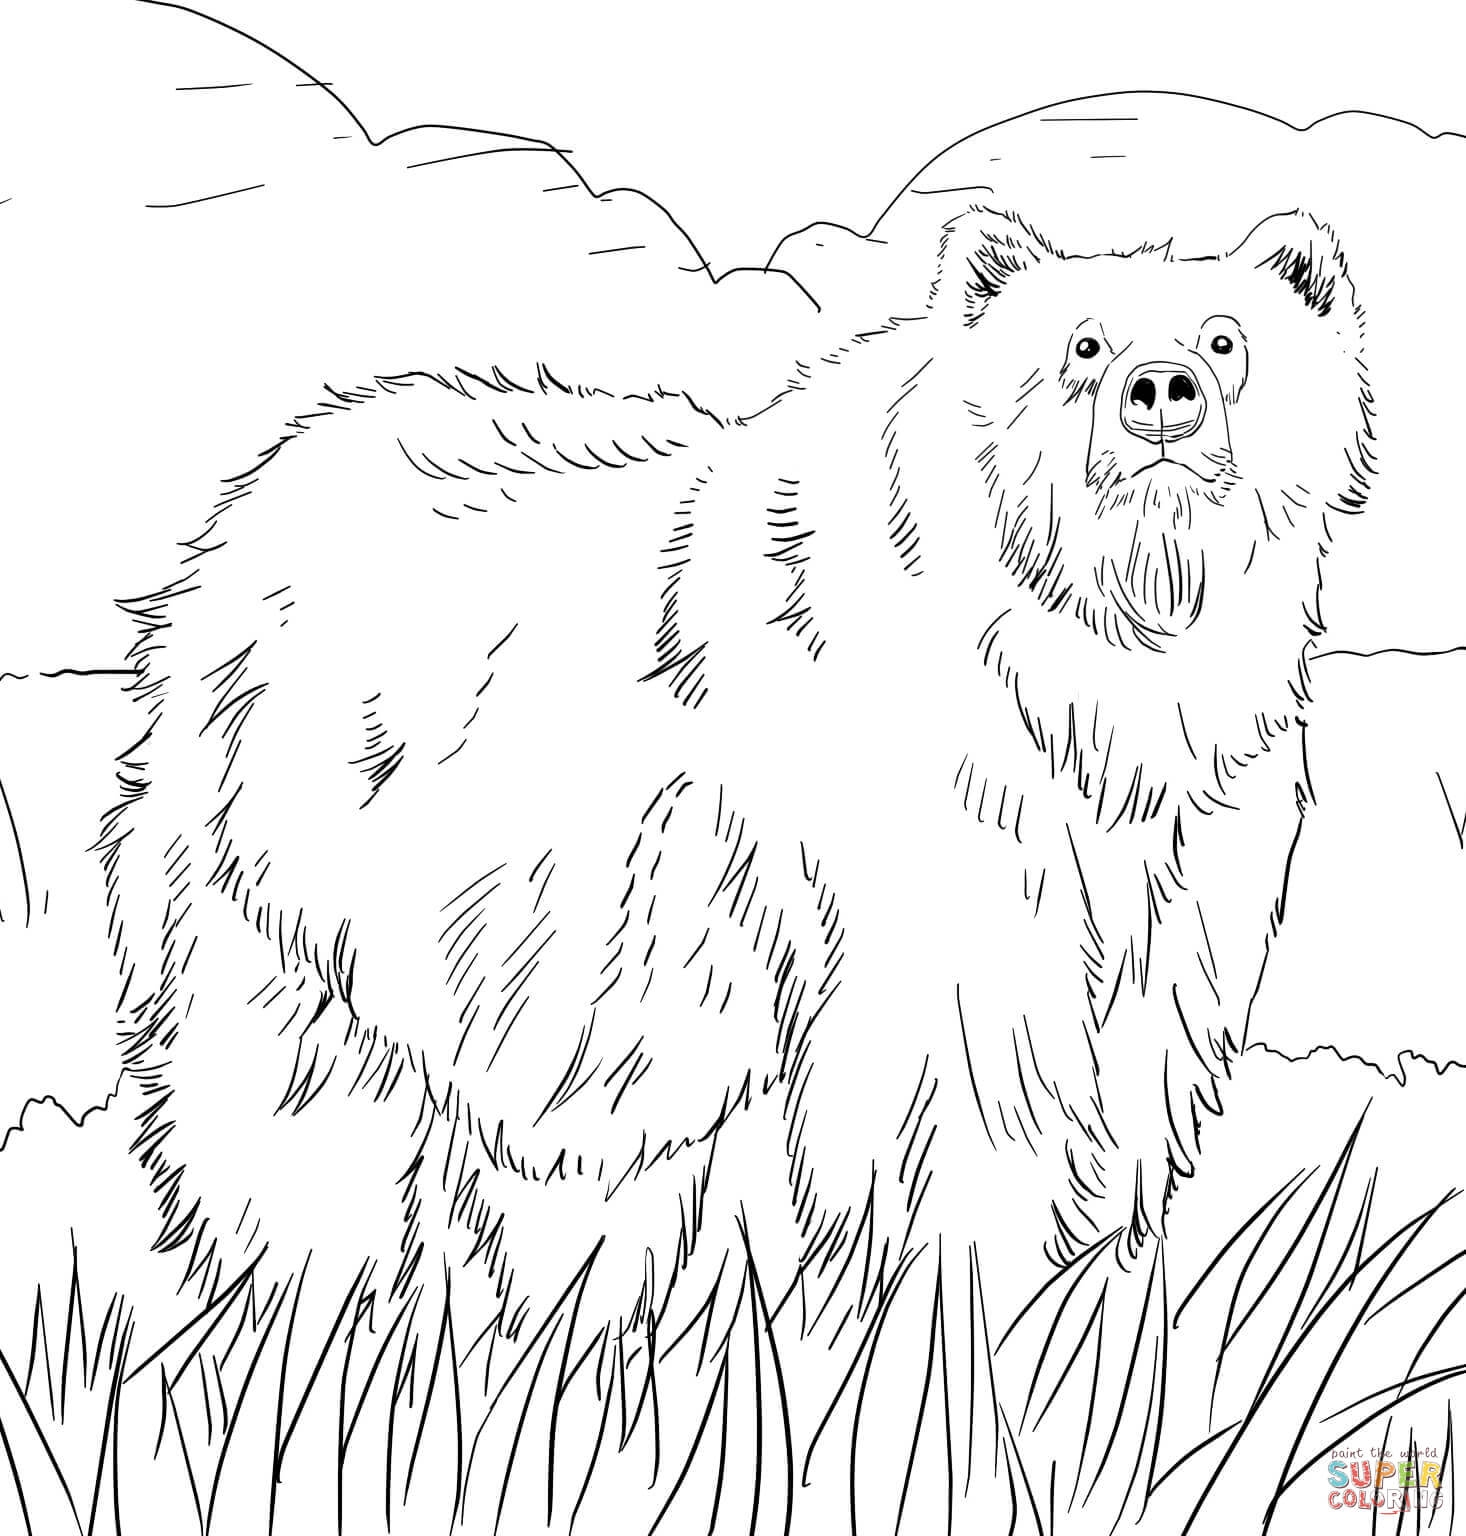 grizzly bear coloring page - alaskan grizzly bear